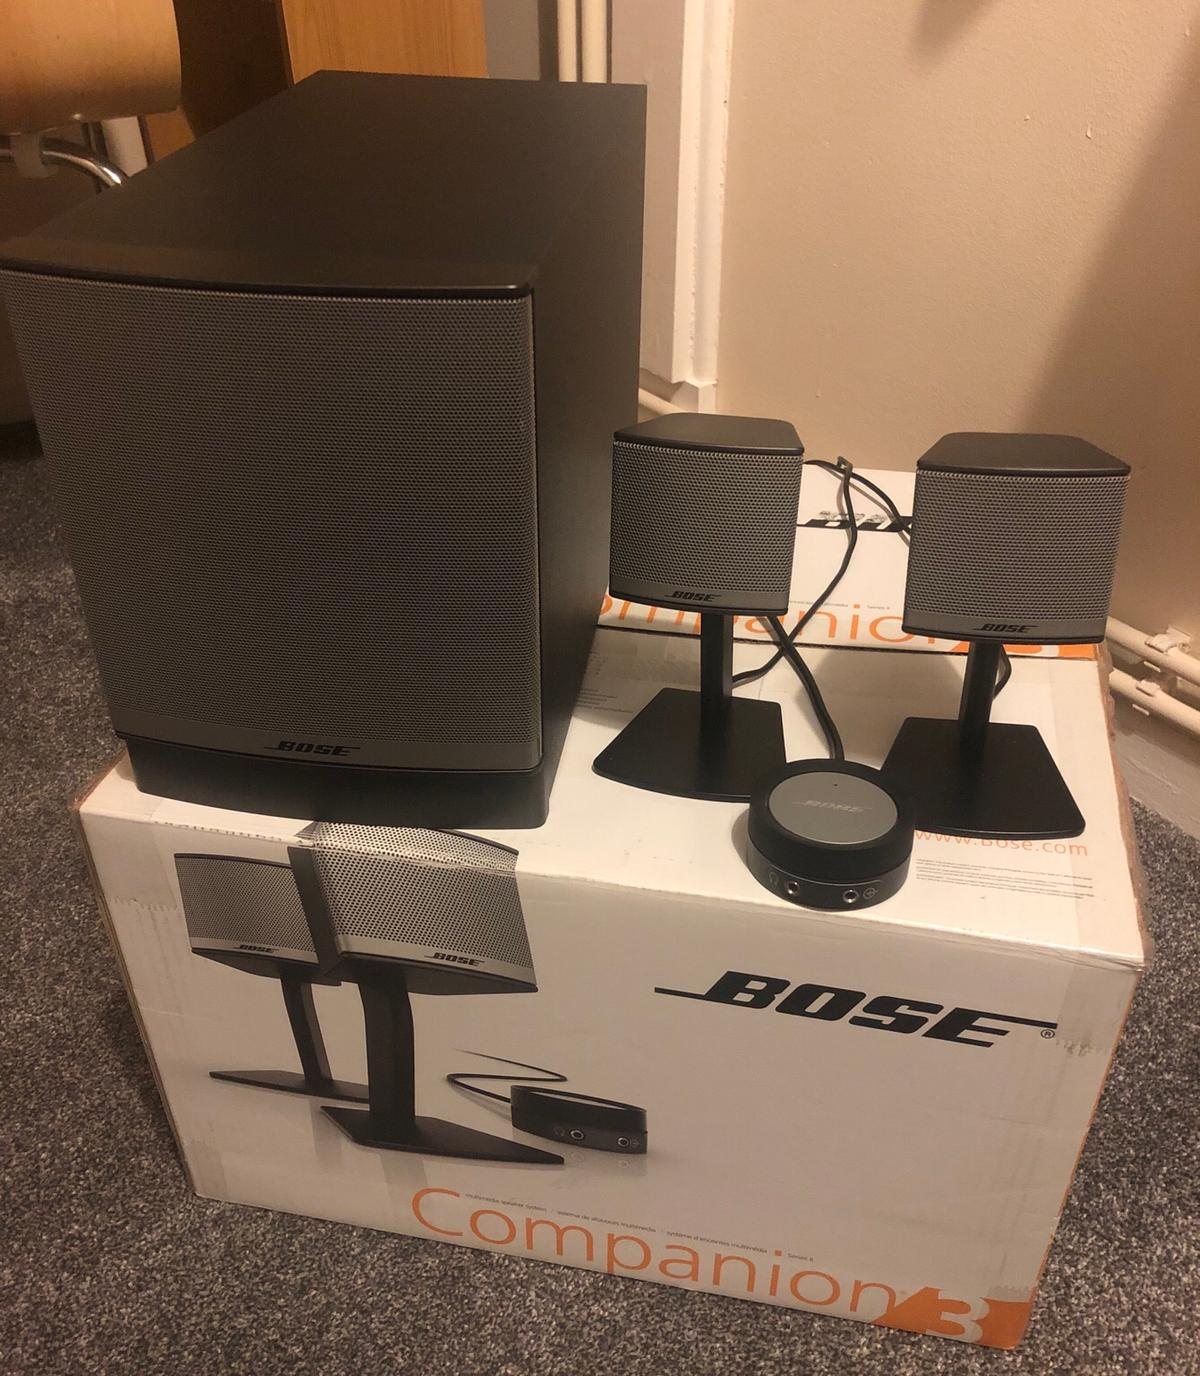 Bose Companion 3 series 2 multimedia speakers